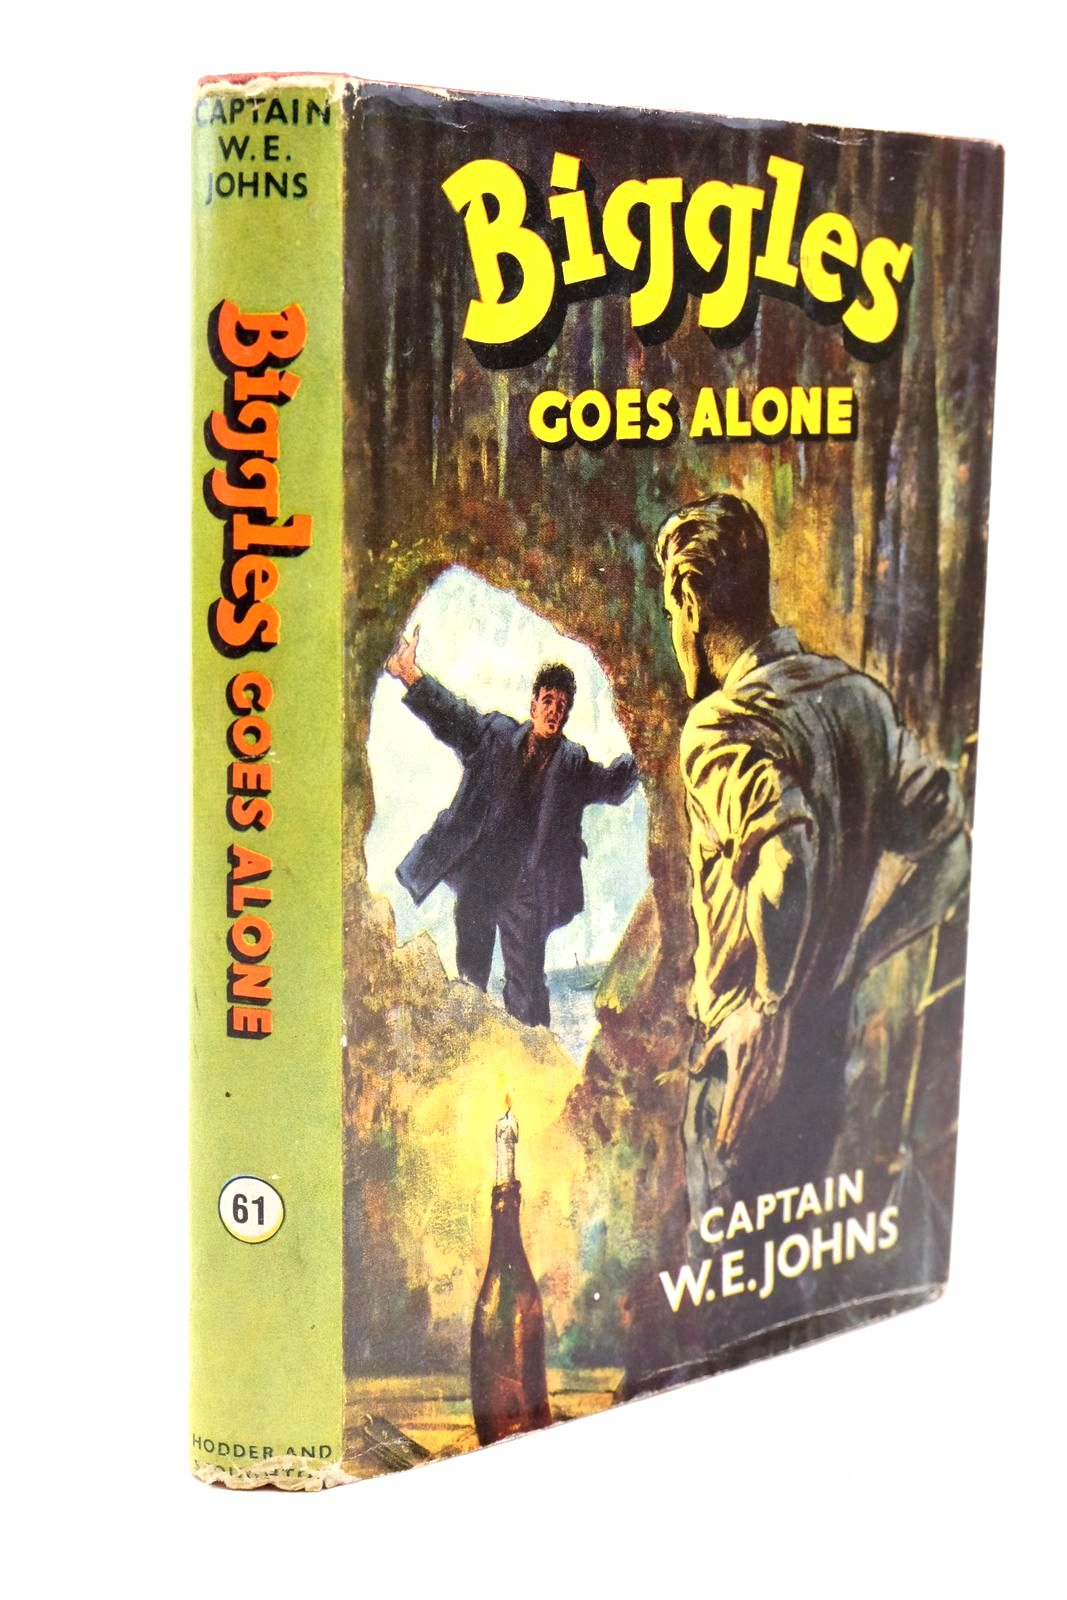 Photo of BIGGLES GOES ALONE written by Johns, W.E. illustrated by Stead,  published by Hodder & Stoughton (STOCK CODE: 1321641)  for sale by Stella & Rose's Books